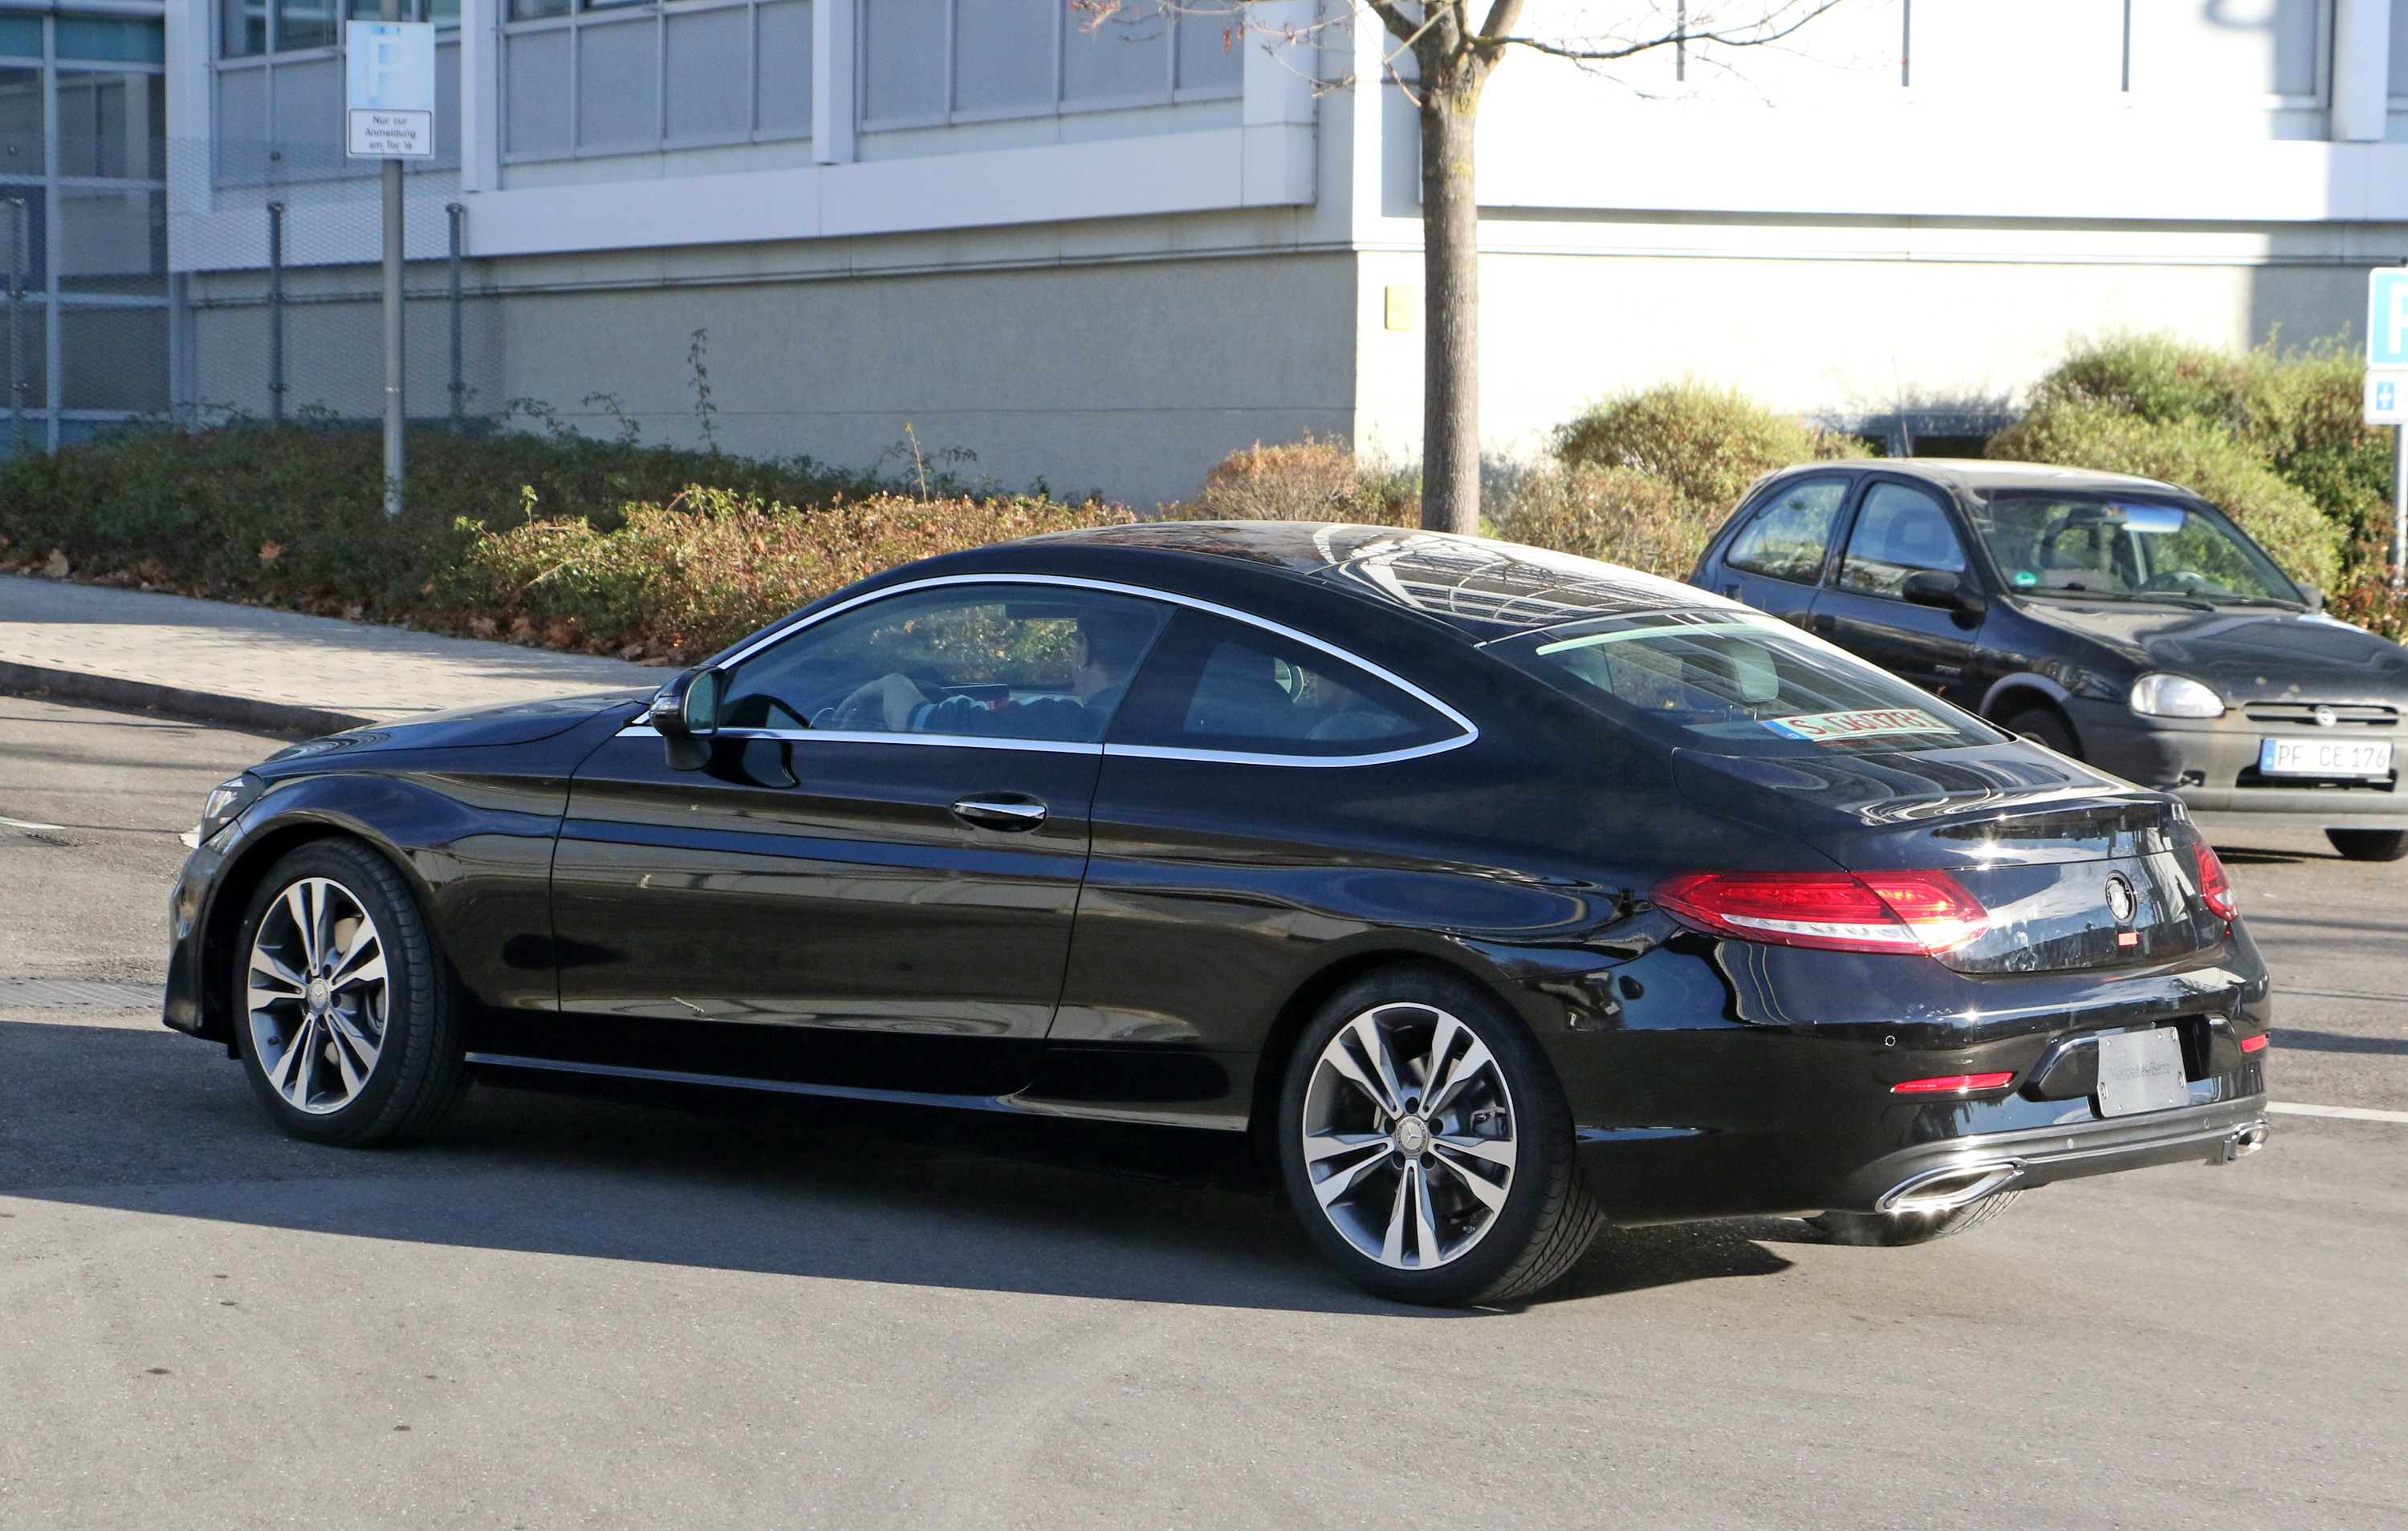 2018 Mercedes-Benz C-Class Coupe Gallery 698921